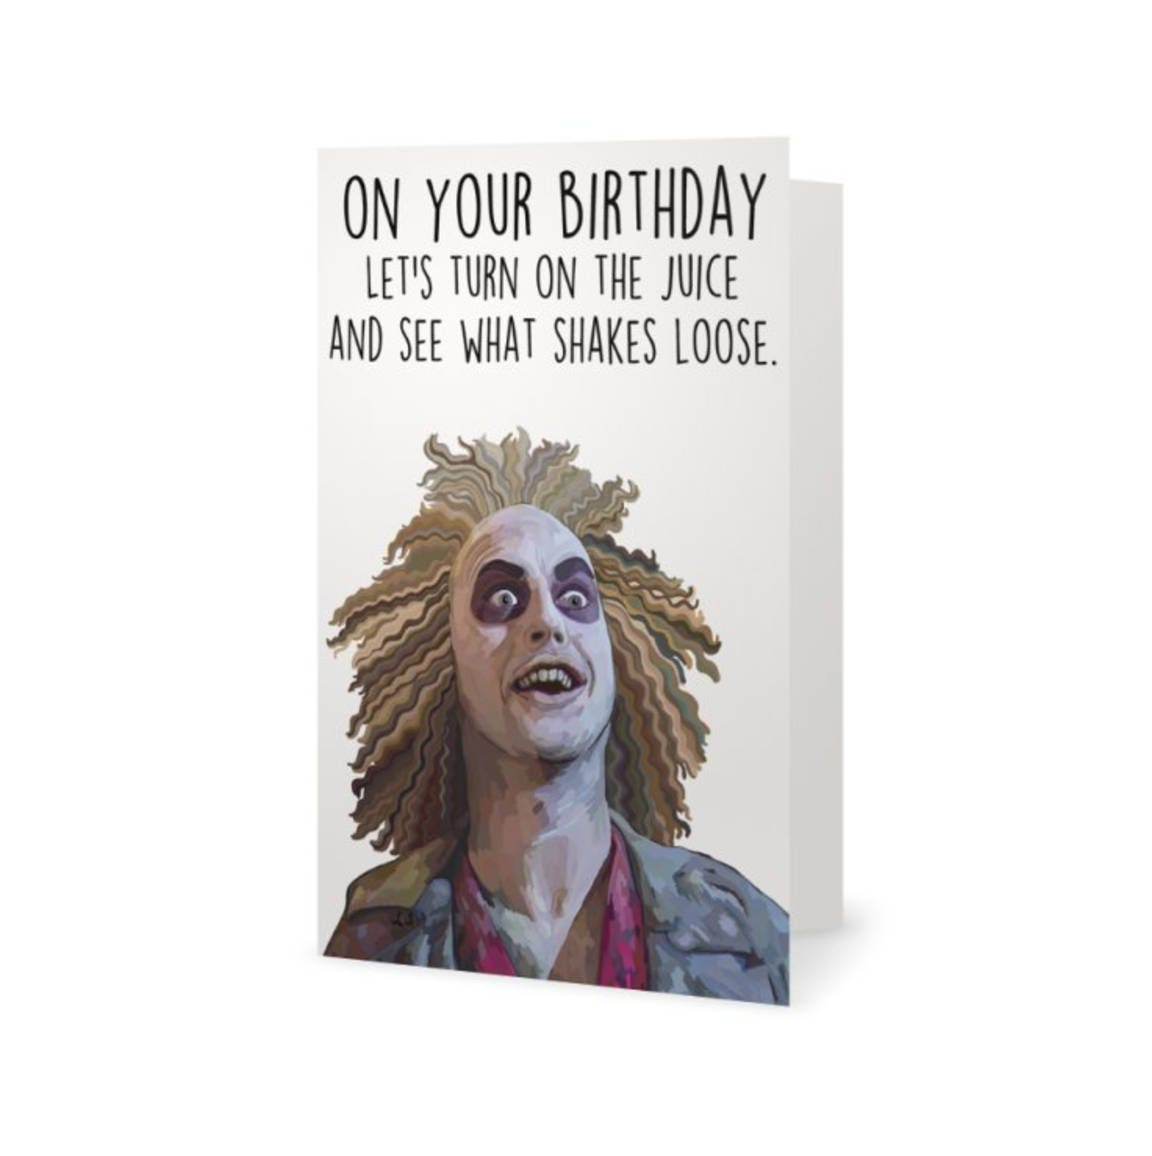 Beetlejuice Birthday Card Funny Birthday Card Party Alec – Bruce Springsteen Birthday Card